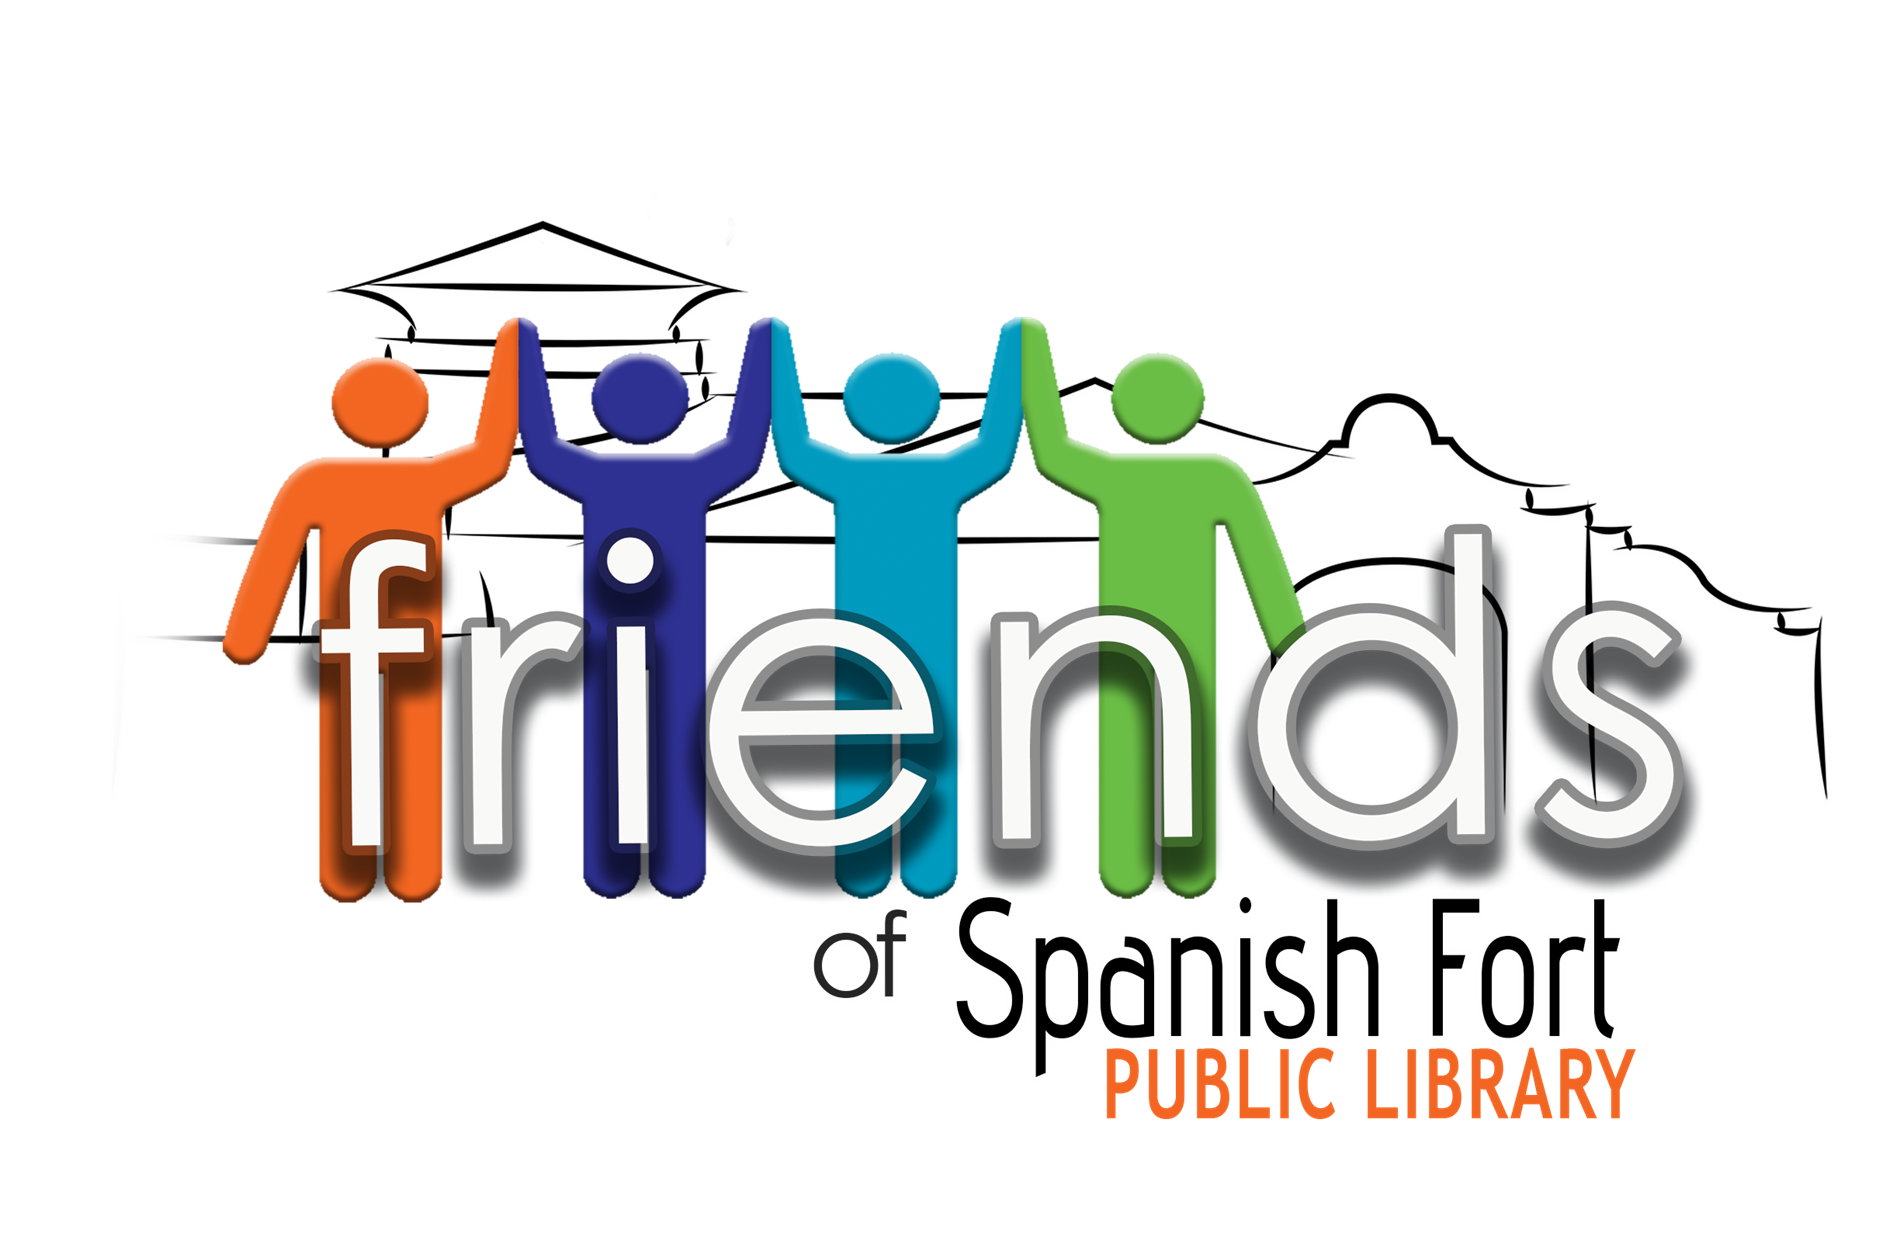 link to Friends of Spanish Fort Public Library website